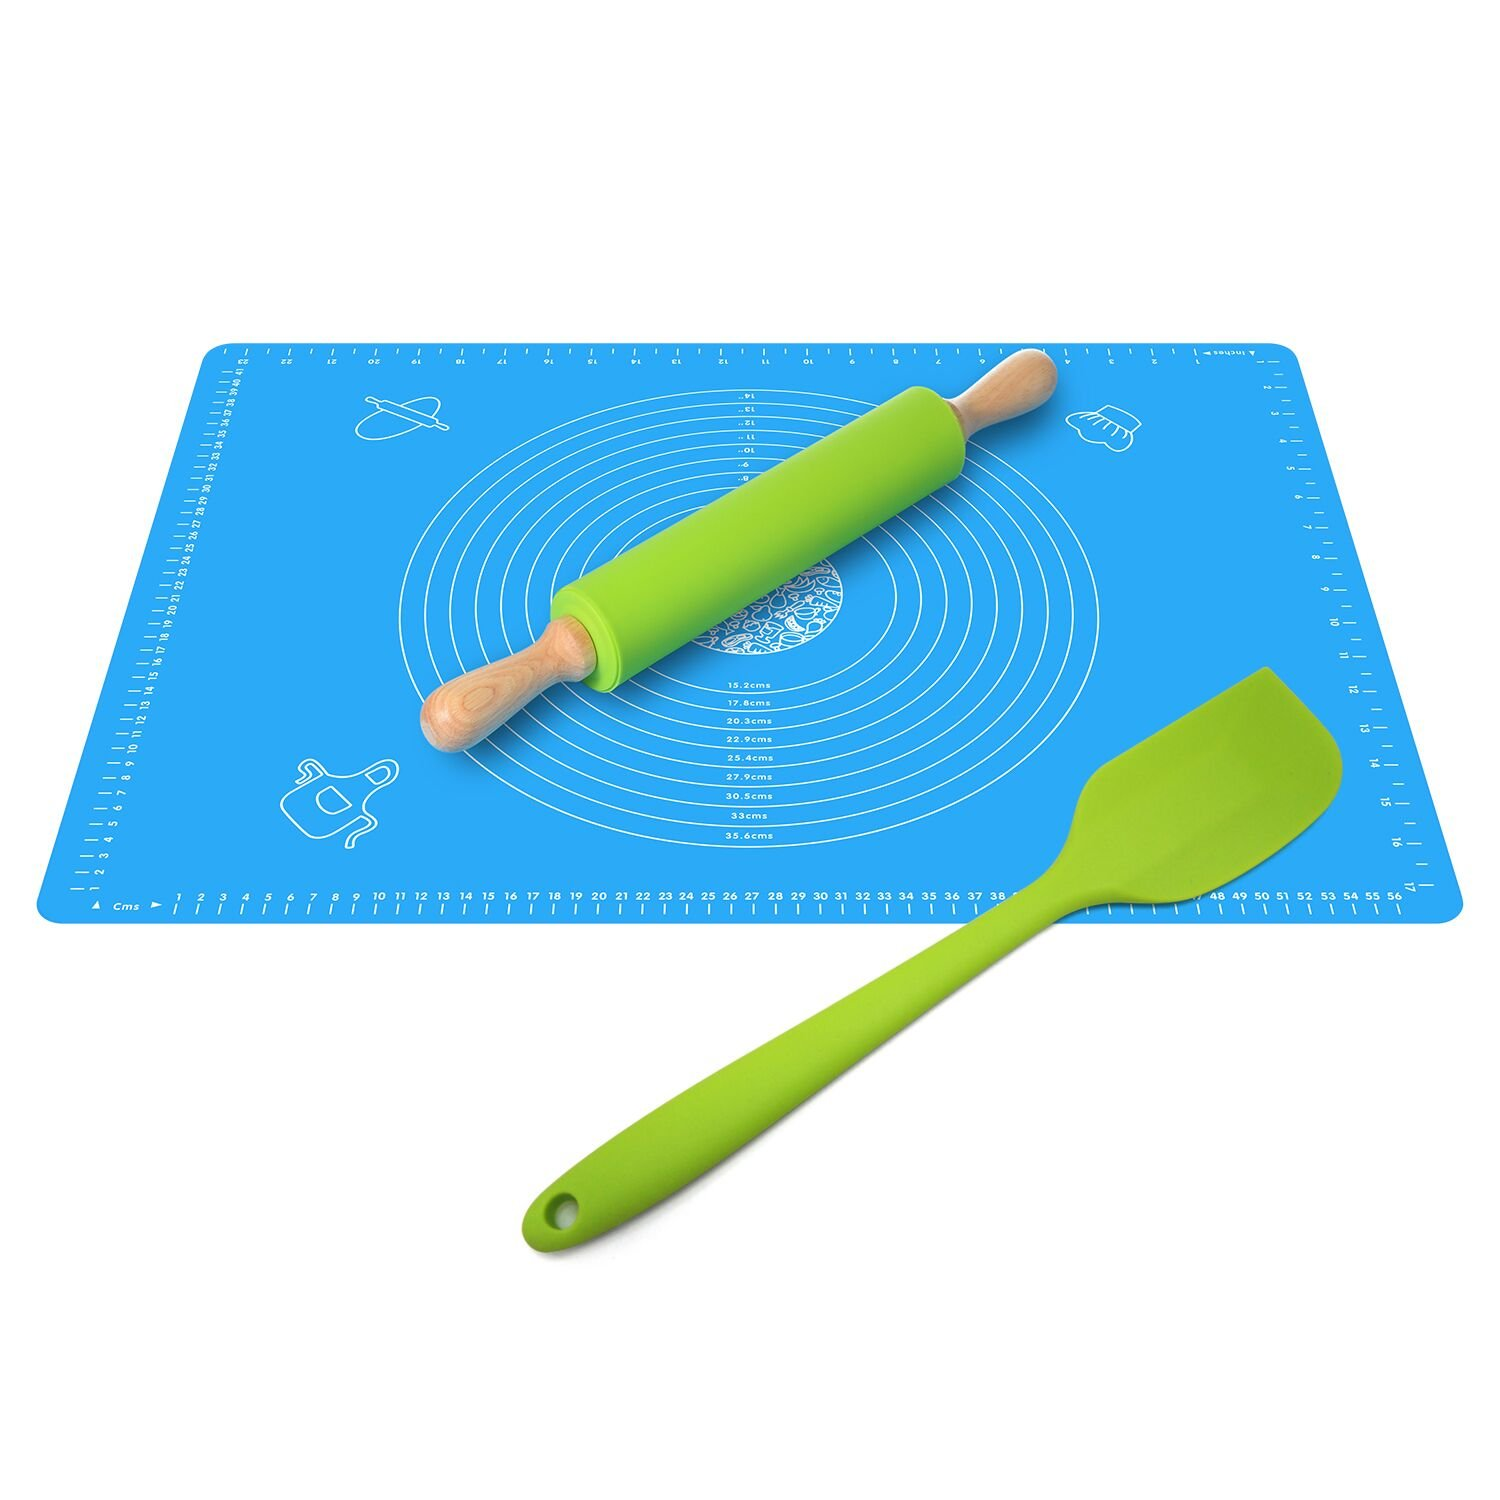 Ganoteck Non-Stick Silicone Rolling Pin &X-Large Silicone Pastry Mat ''25 X 17'' a free Silicone Spatula, Rolling Pin, Non-stick Silicone Dough Rollers Set with Measurements Kneading Pastry Mat